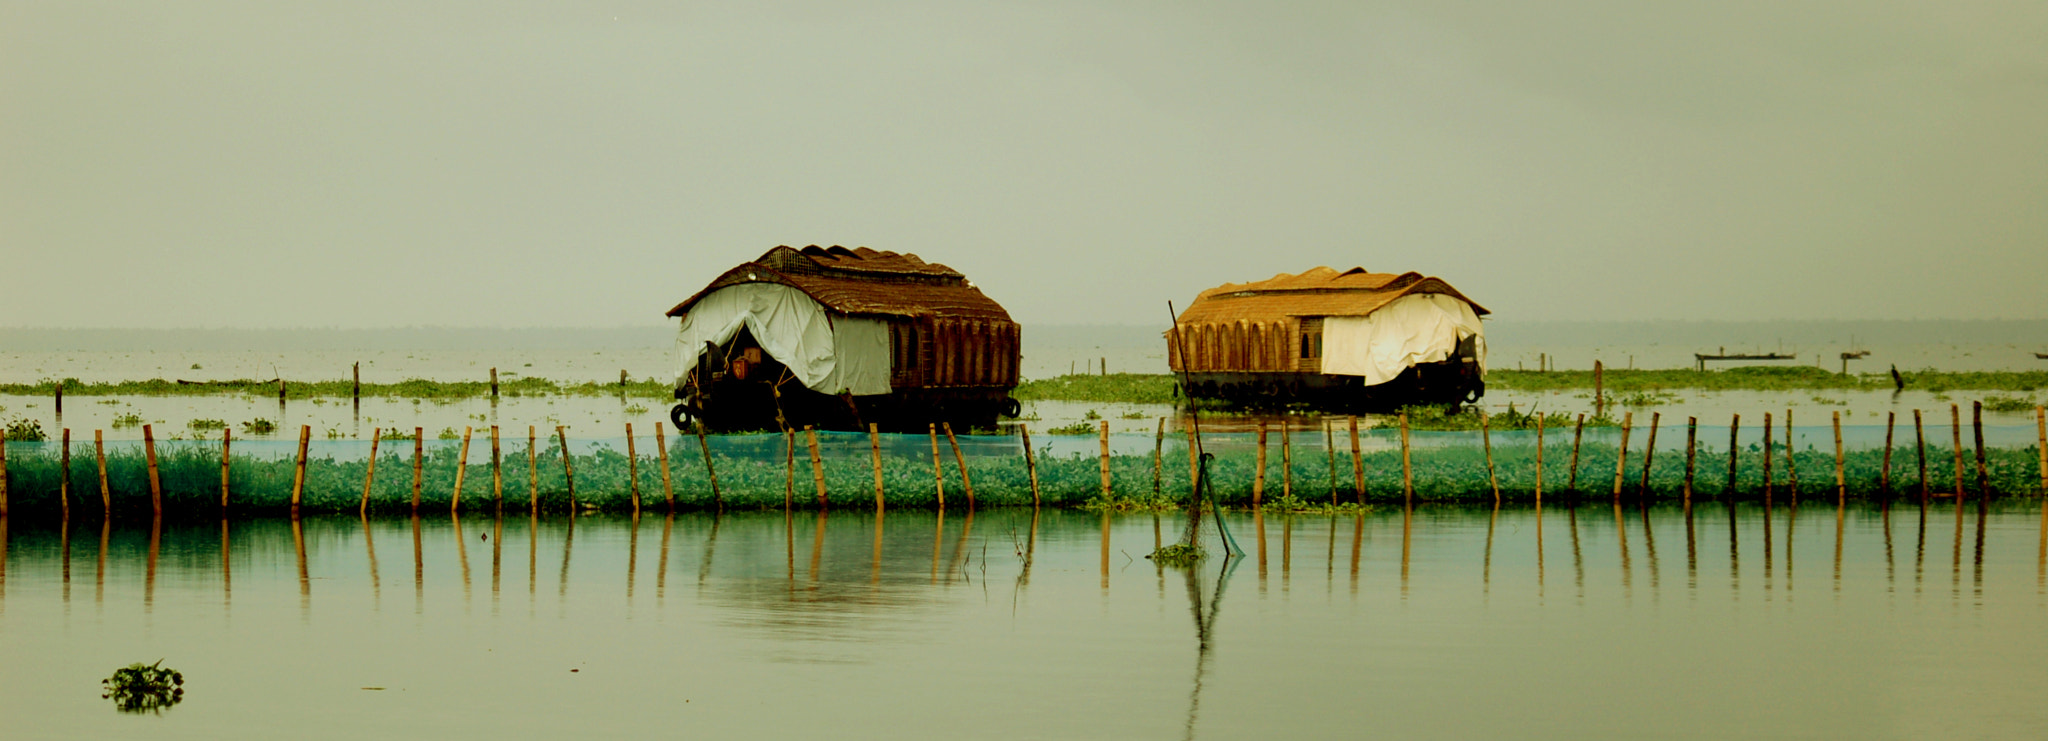 Photograph House boats in Kerala by Sisyphus R on 500px